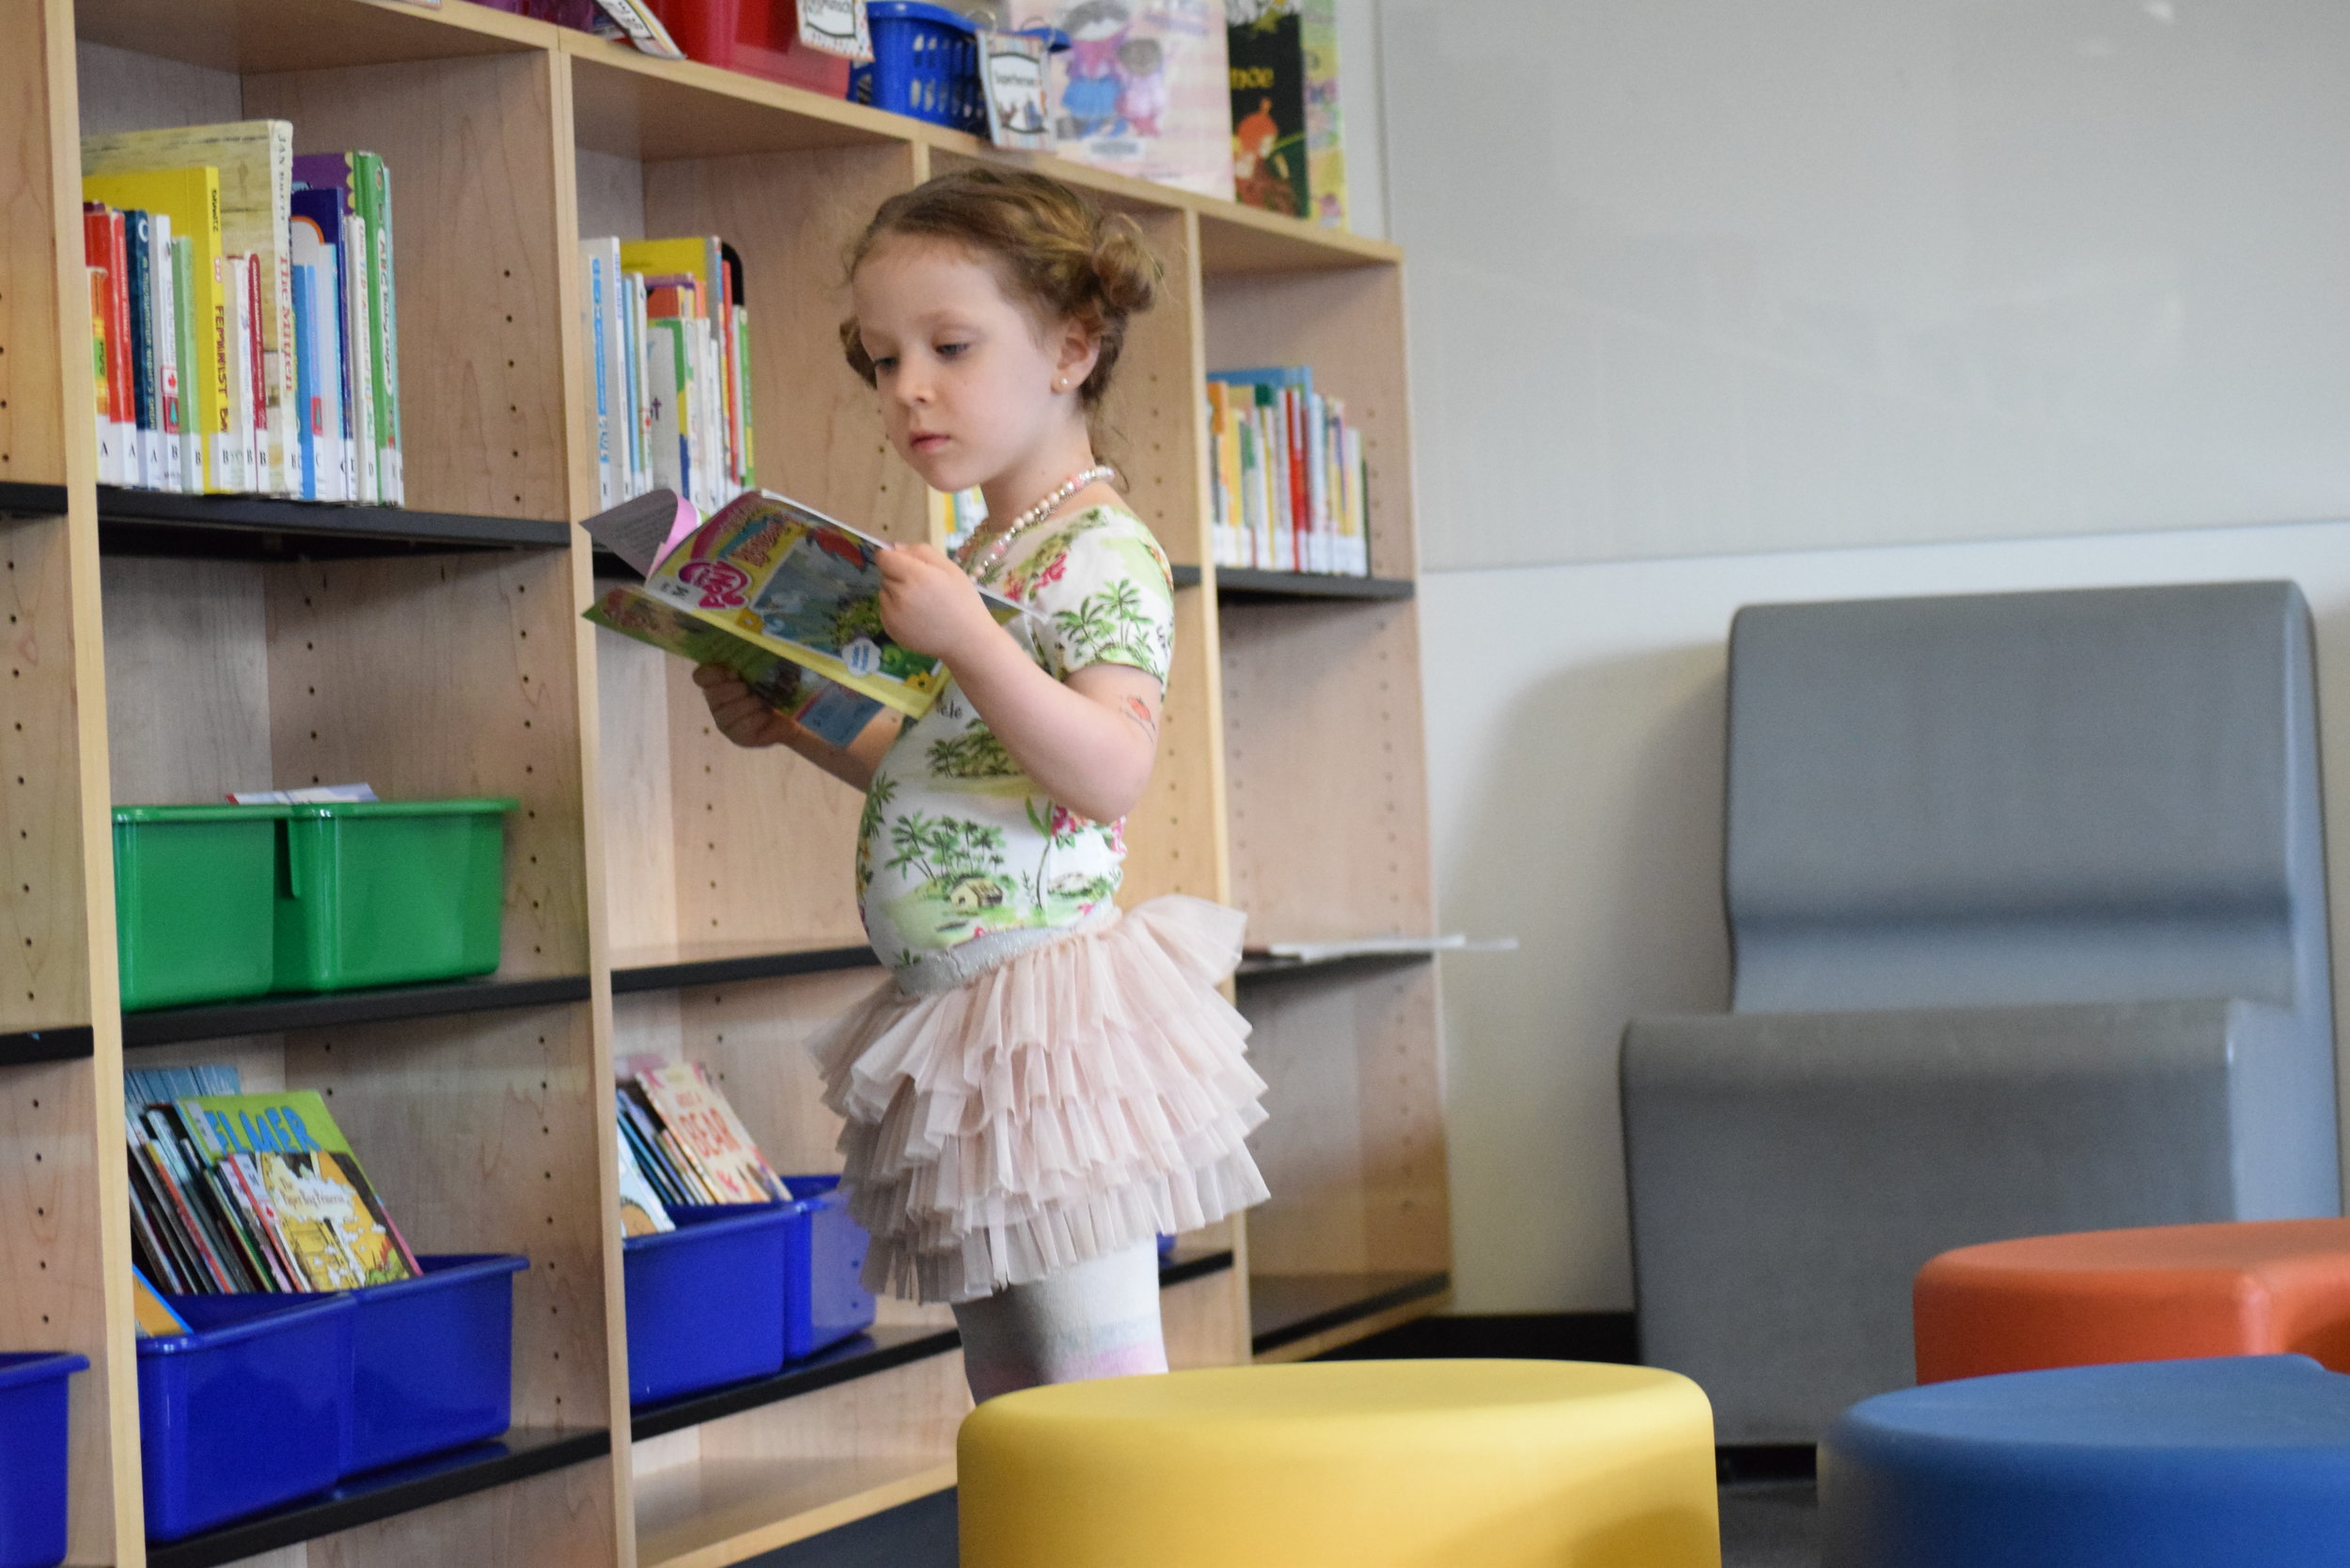 saskatoon public library has no childrens fines